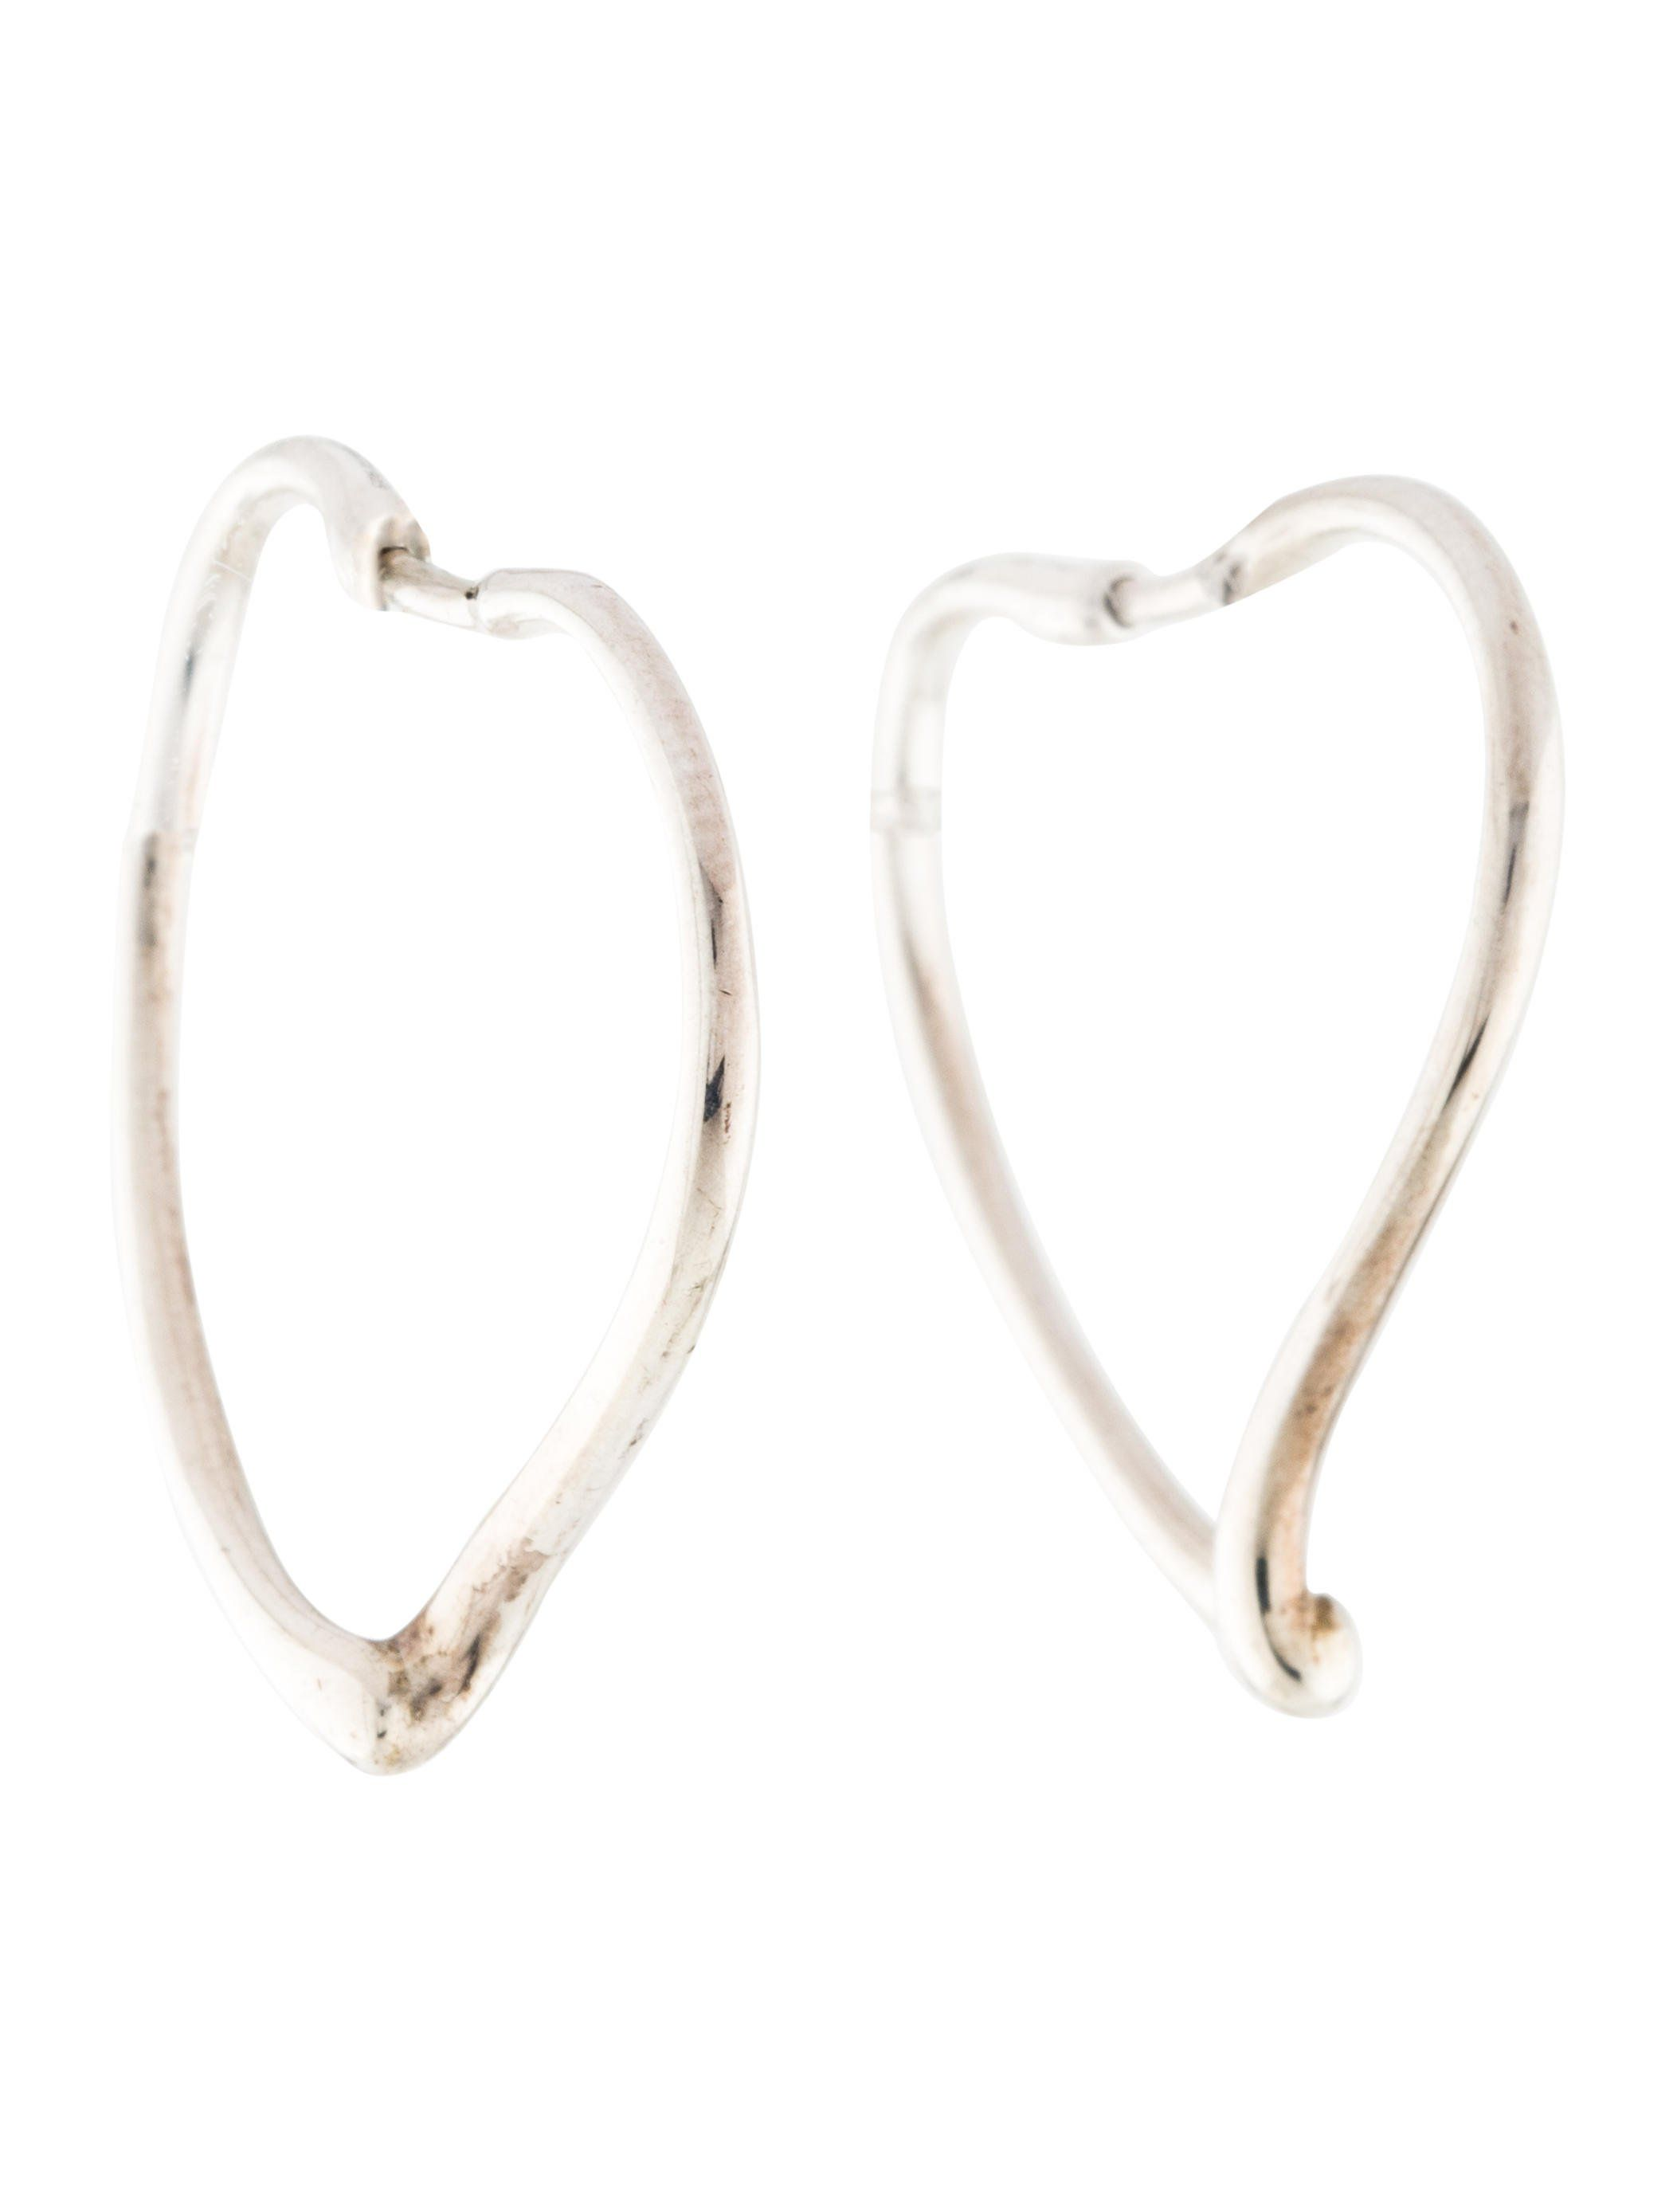 bd988fbbb From the Elsa Peretti Collection. Sterling silver Tiffany & Co. Open Heart  hoop earrings featuring earwire.